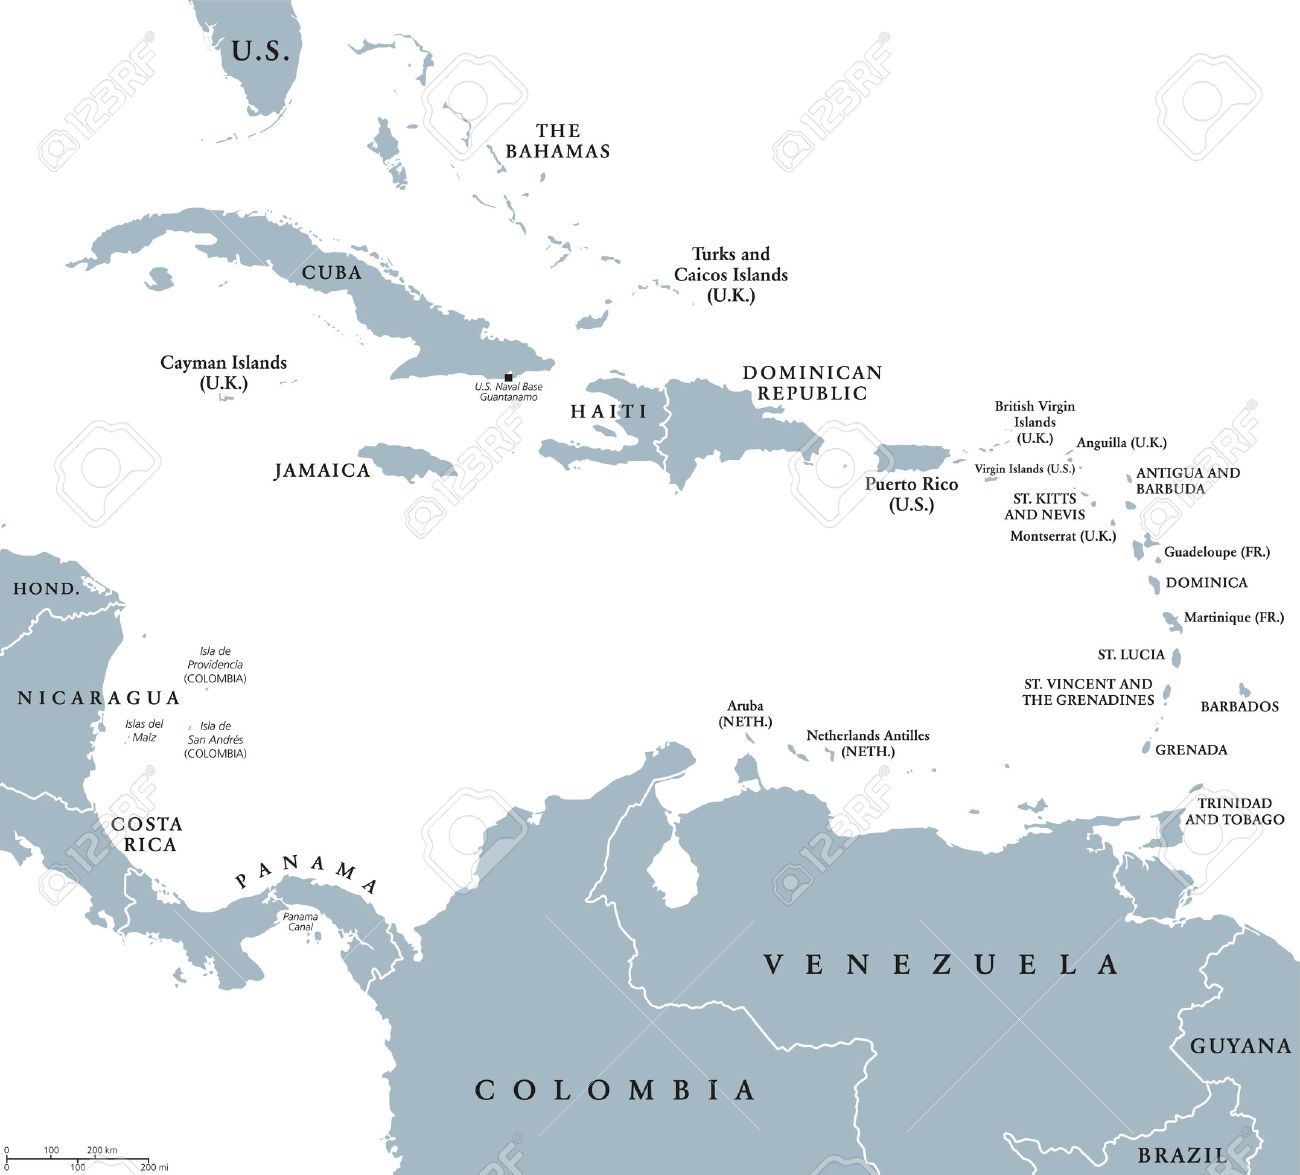 The Caribbean Countries Political Map With National Borders